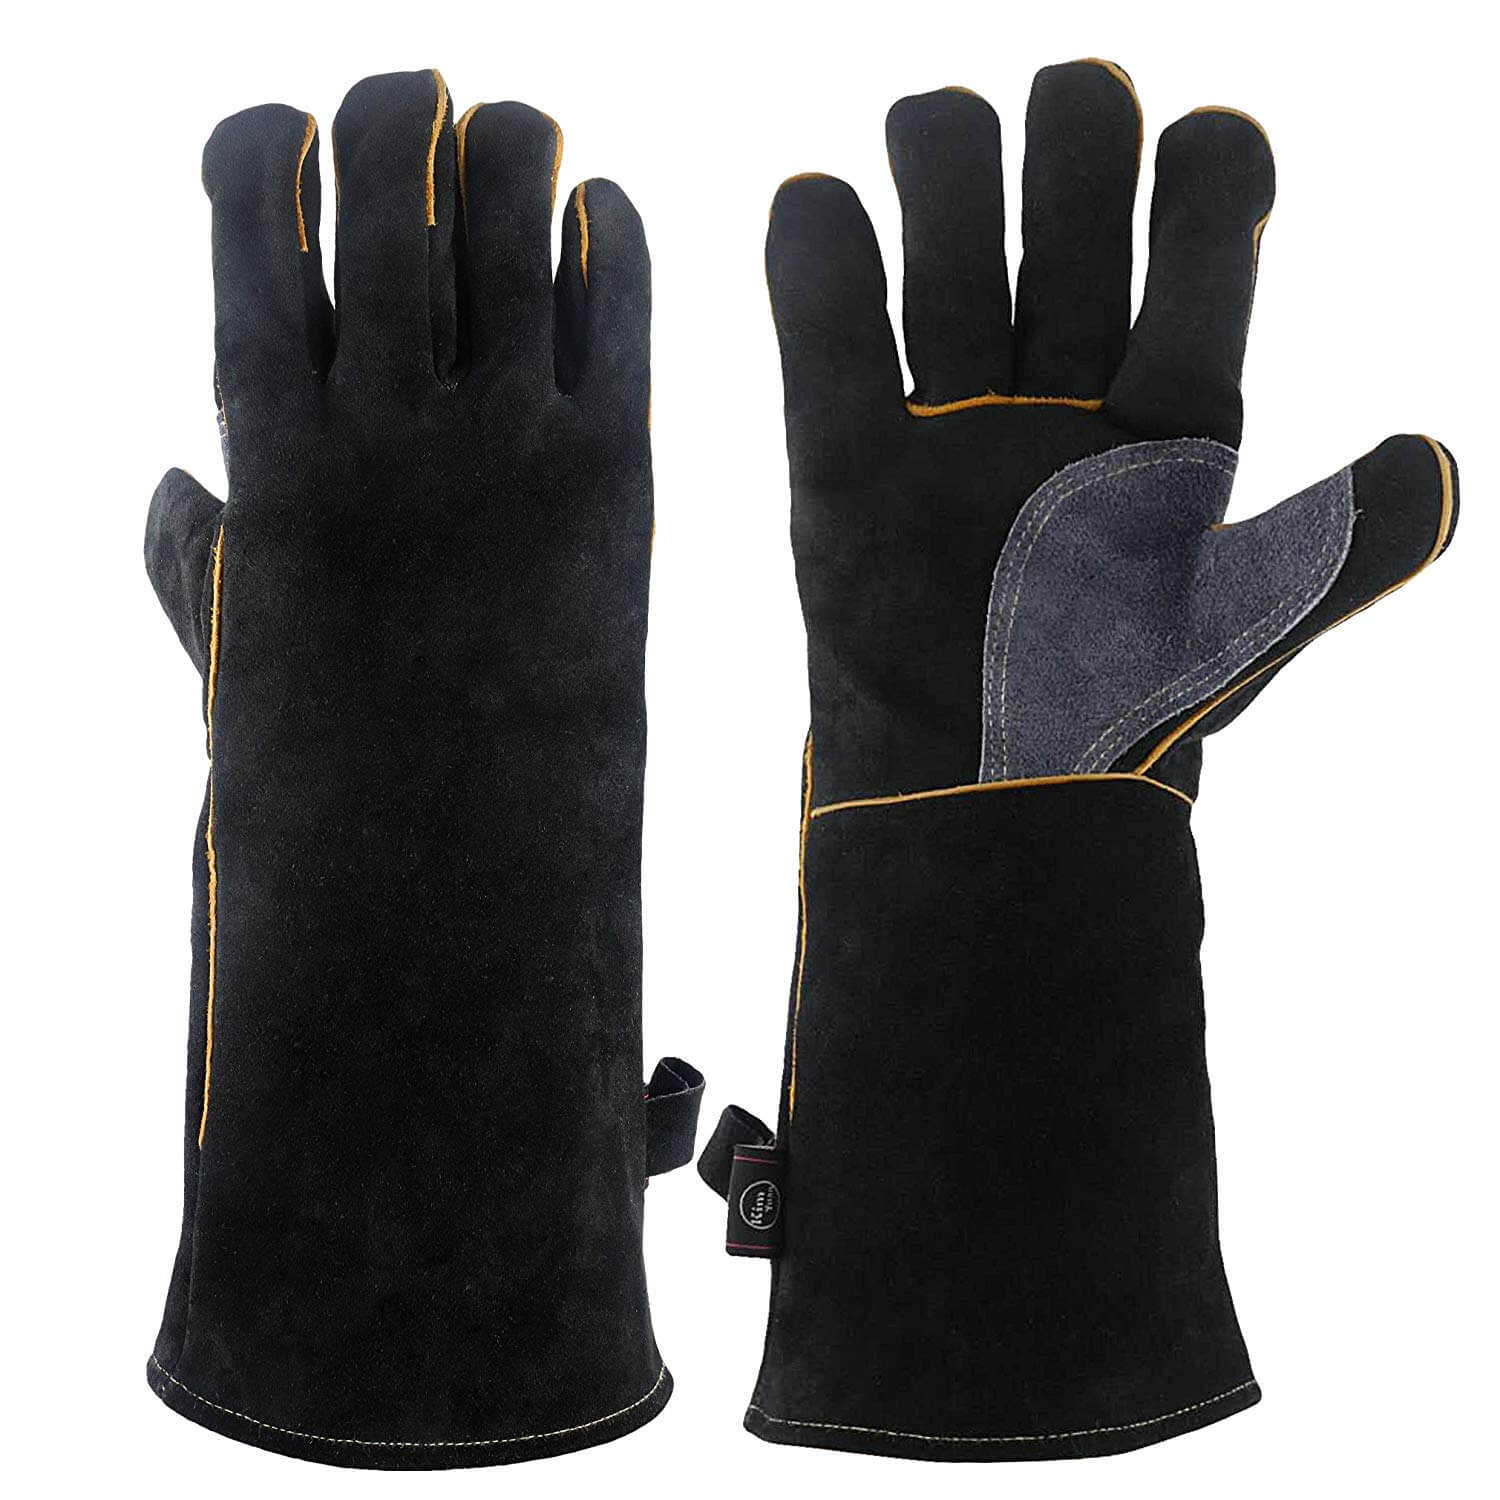 Kim Yuan Extreme Heat and Fire Resistant Gloves